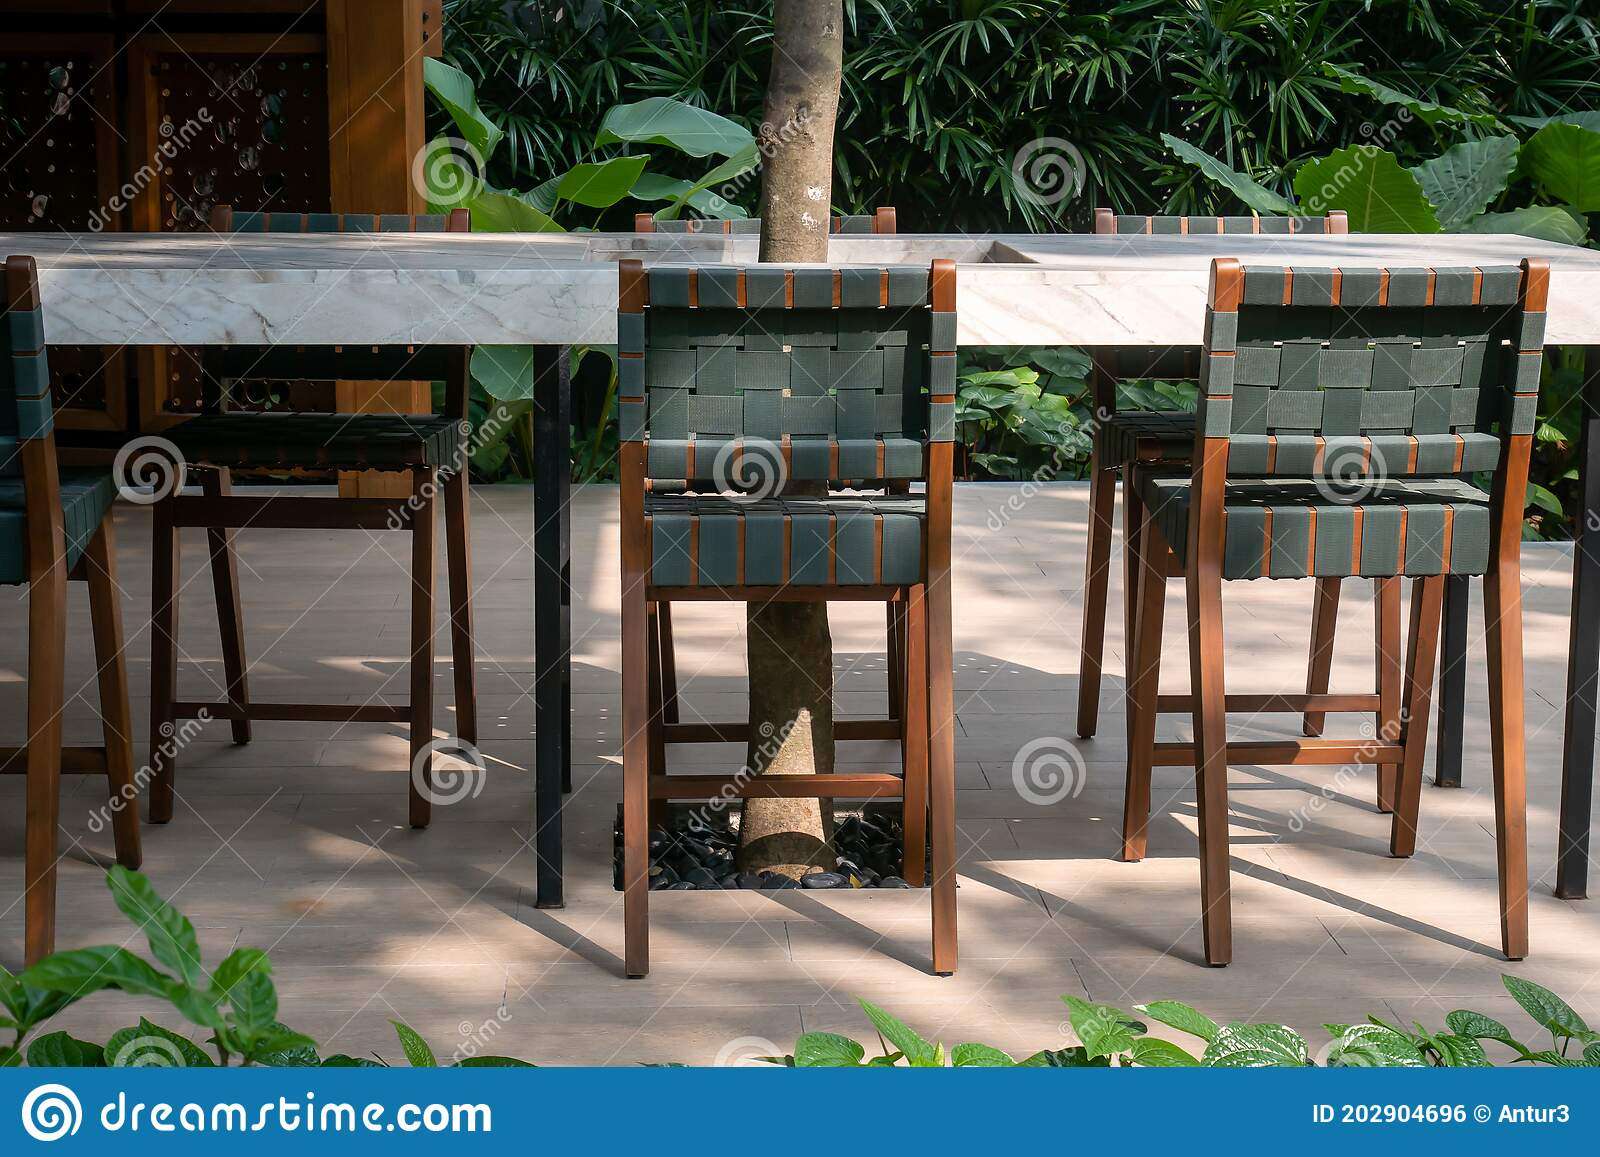 Wooden Green Chairs With White Marble Table On Outside House Background Stock Photo Image Of Chairs Decor 202904696